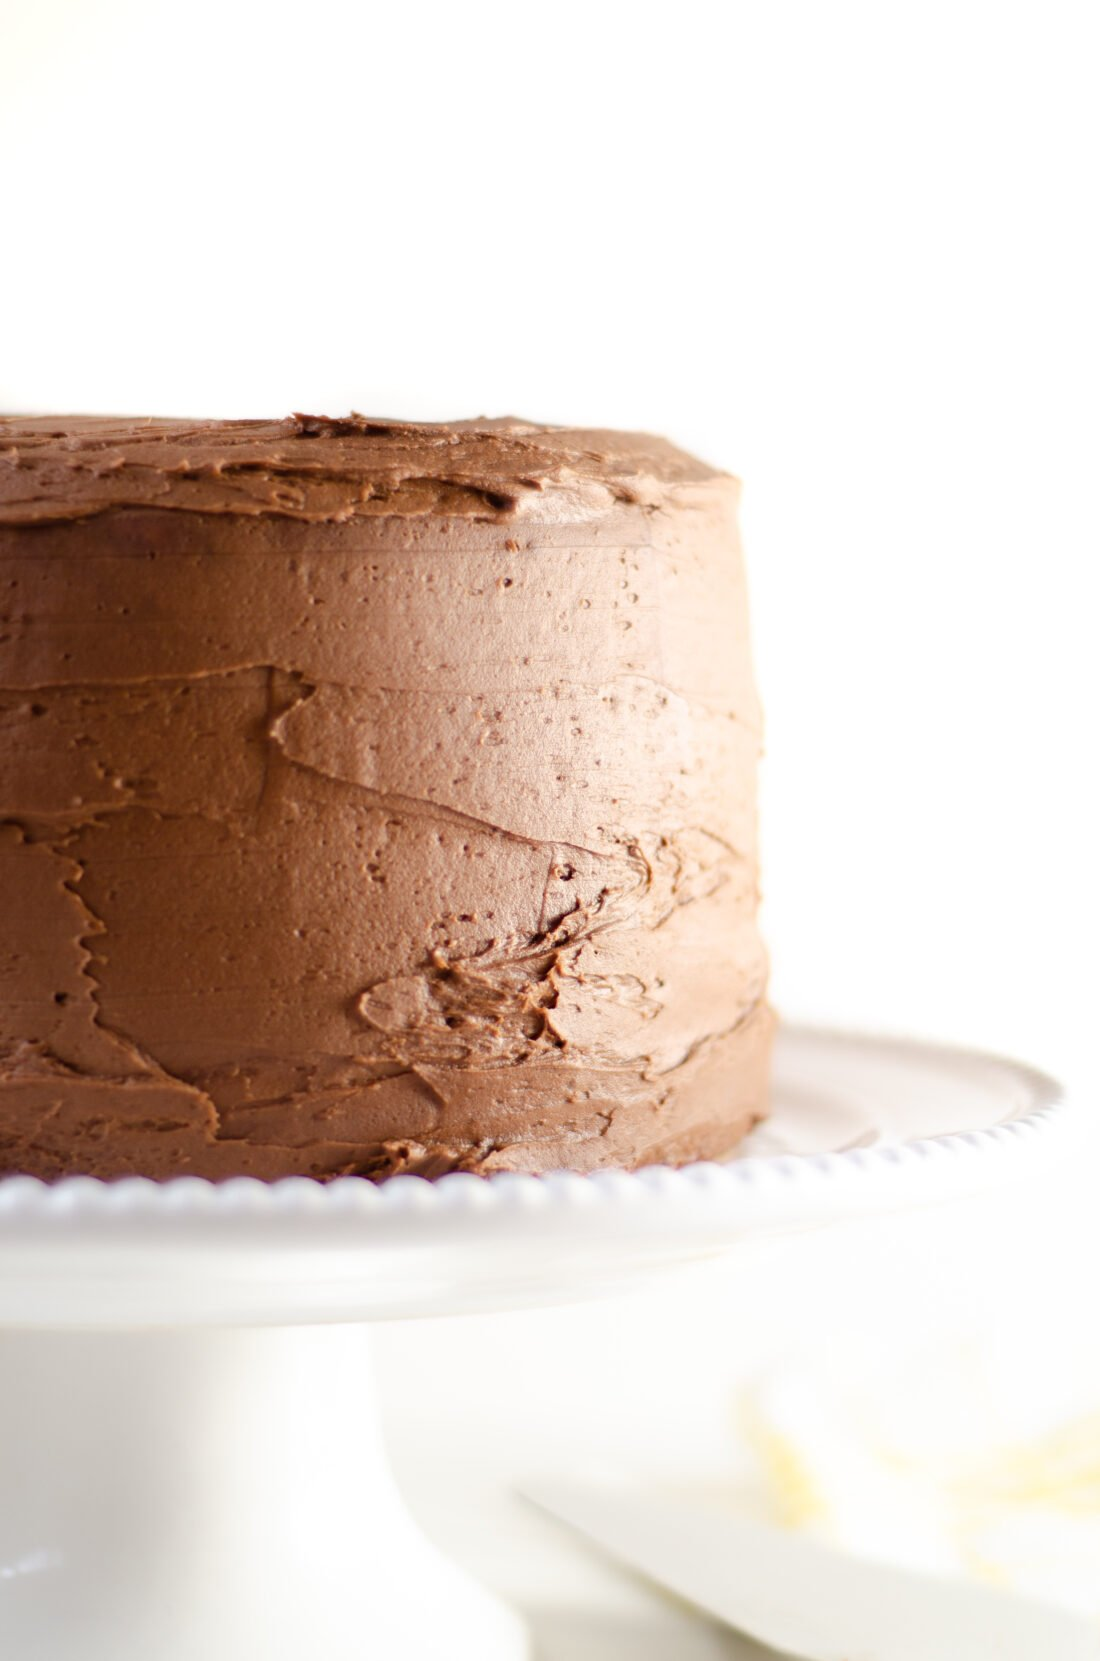 A classic homemade yellow butter cake recipe, with a homemade chocolate frosting. Bake this easy from scratch yellow cake recipe, topped with a smooth chocolate buttercream frosting for your next celebration.